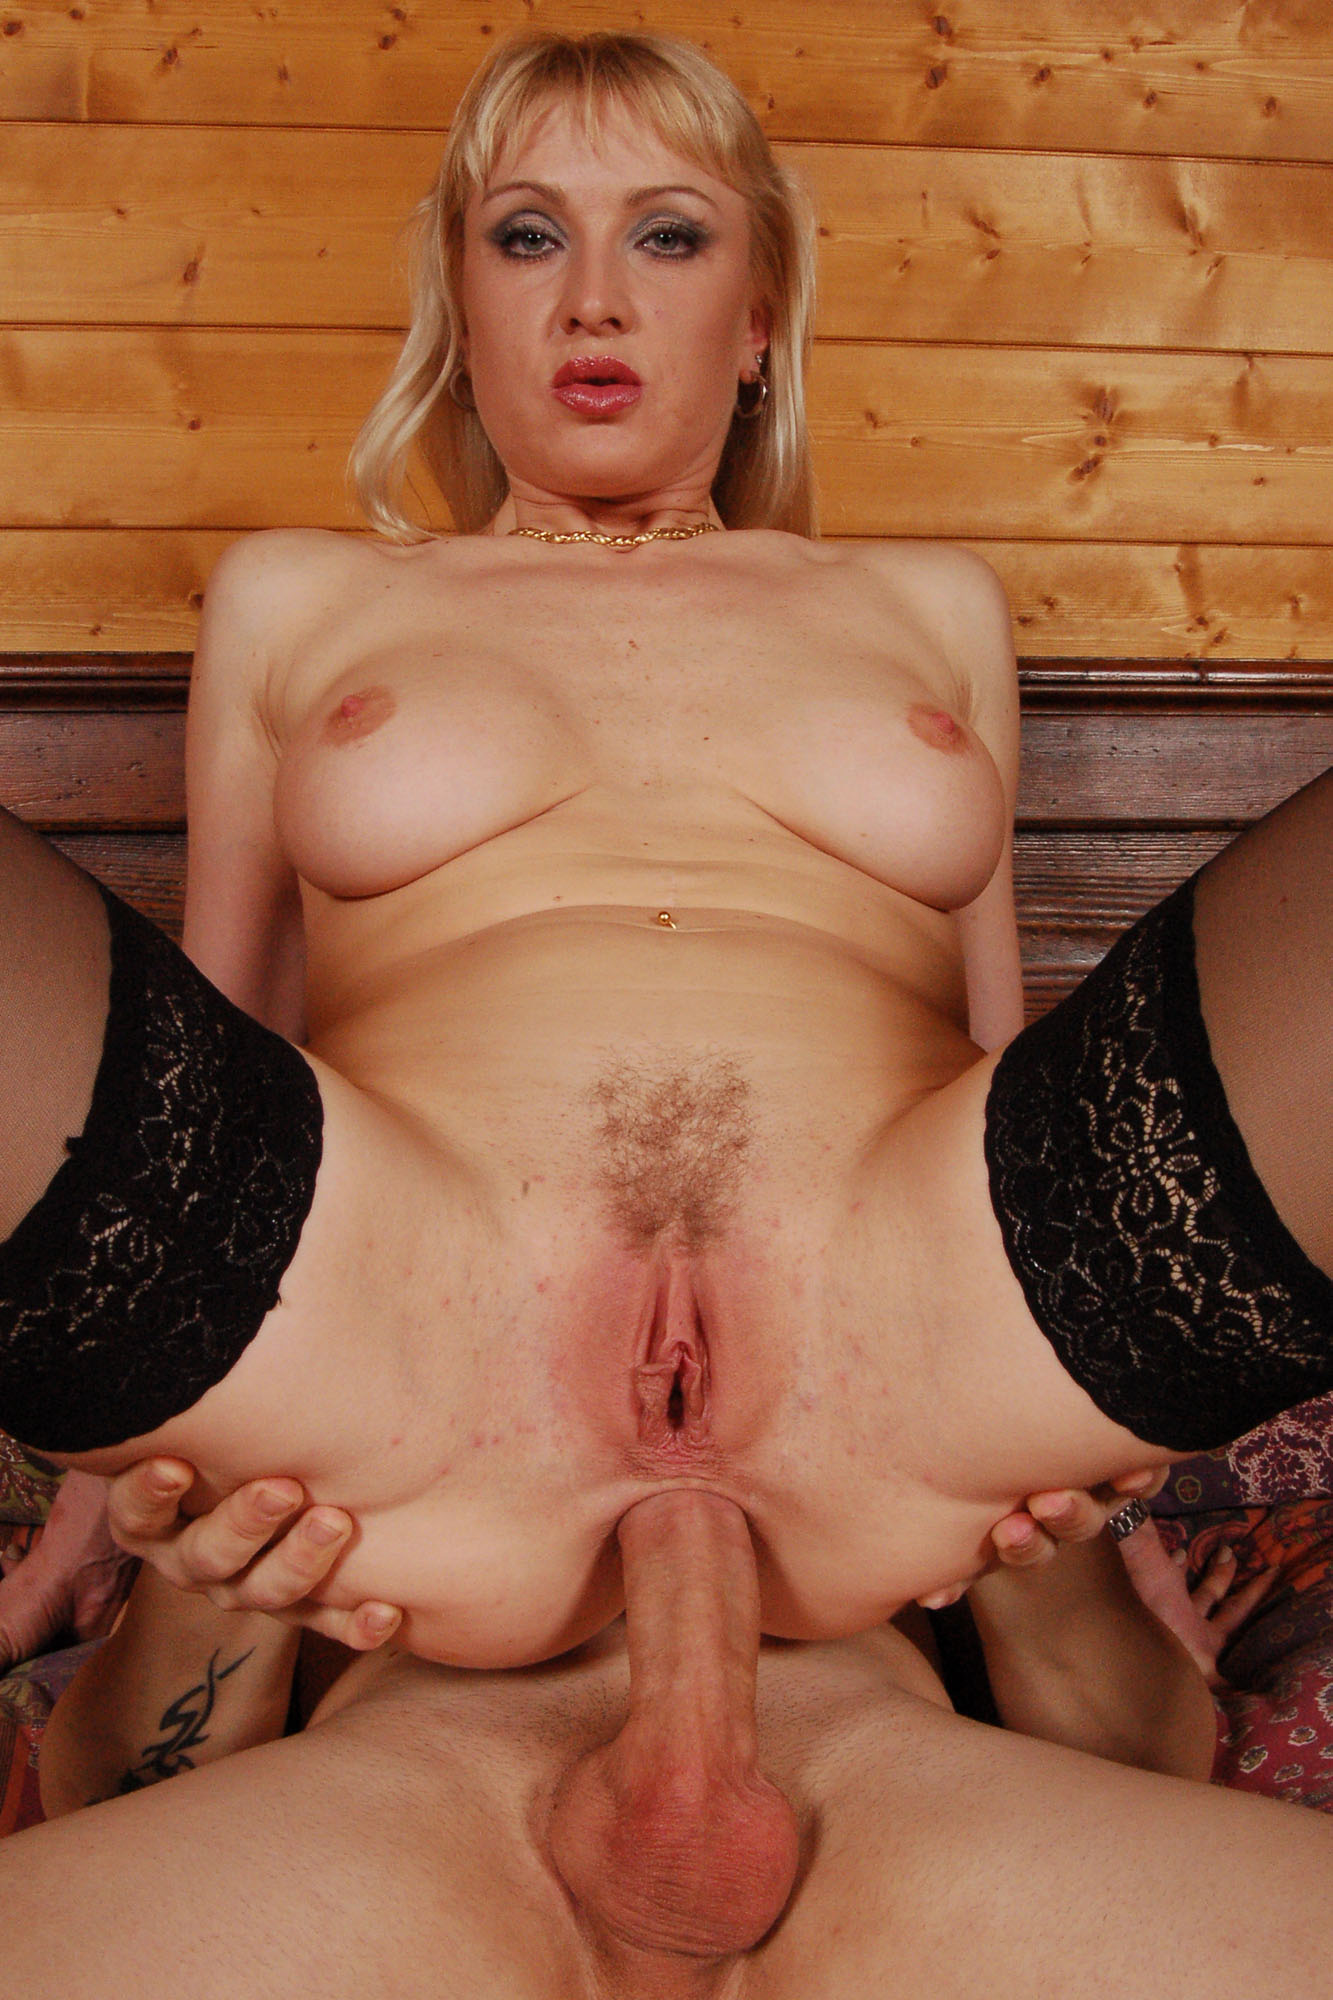 Anal and fist action anal swingers - 2 part 2